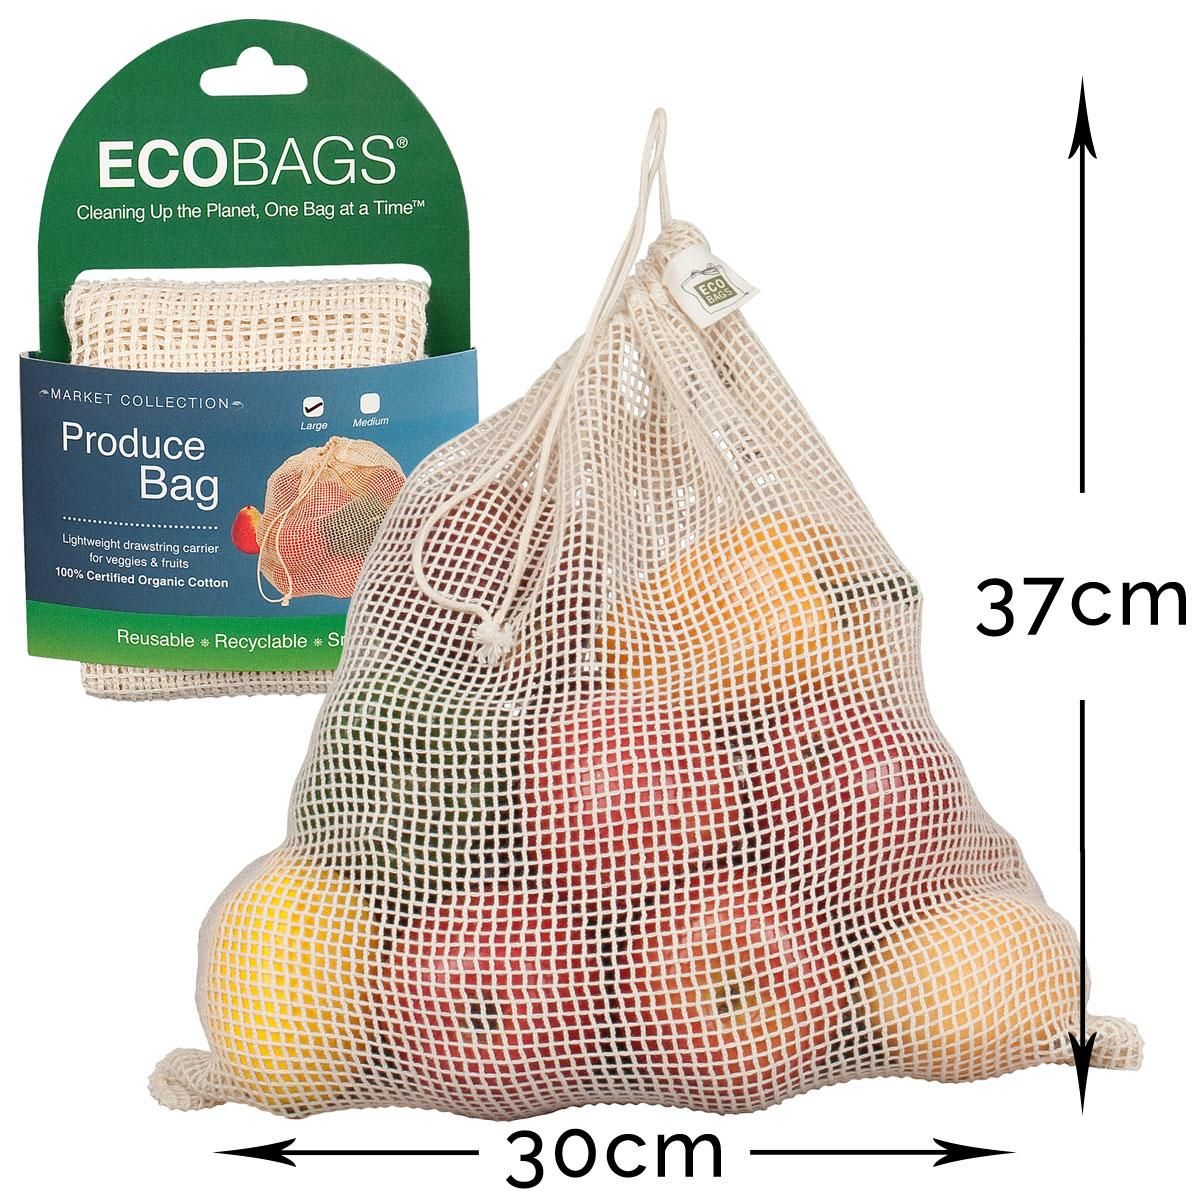 ECOBAGS Organic Cotton Net Grocery Bag - Measurements